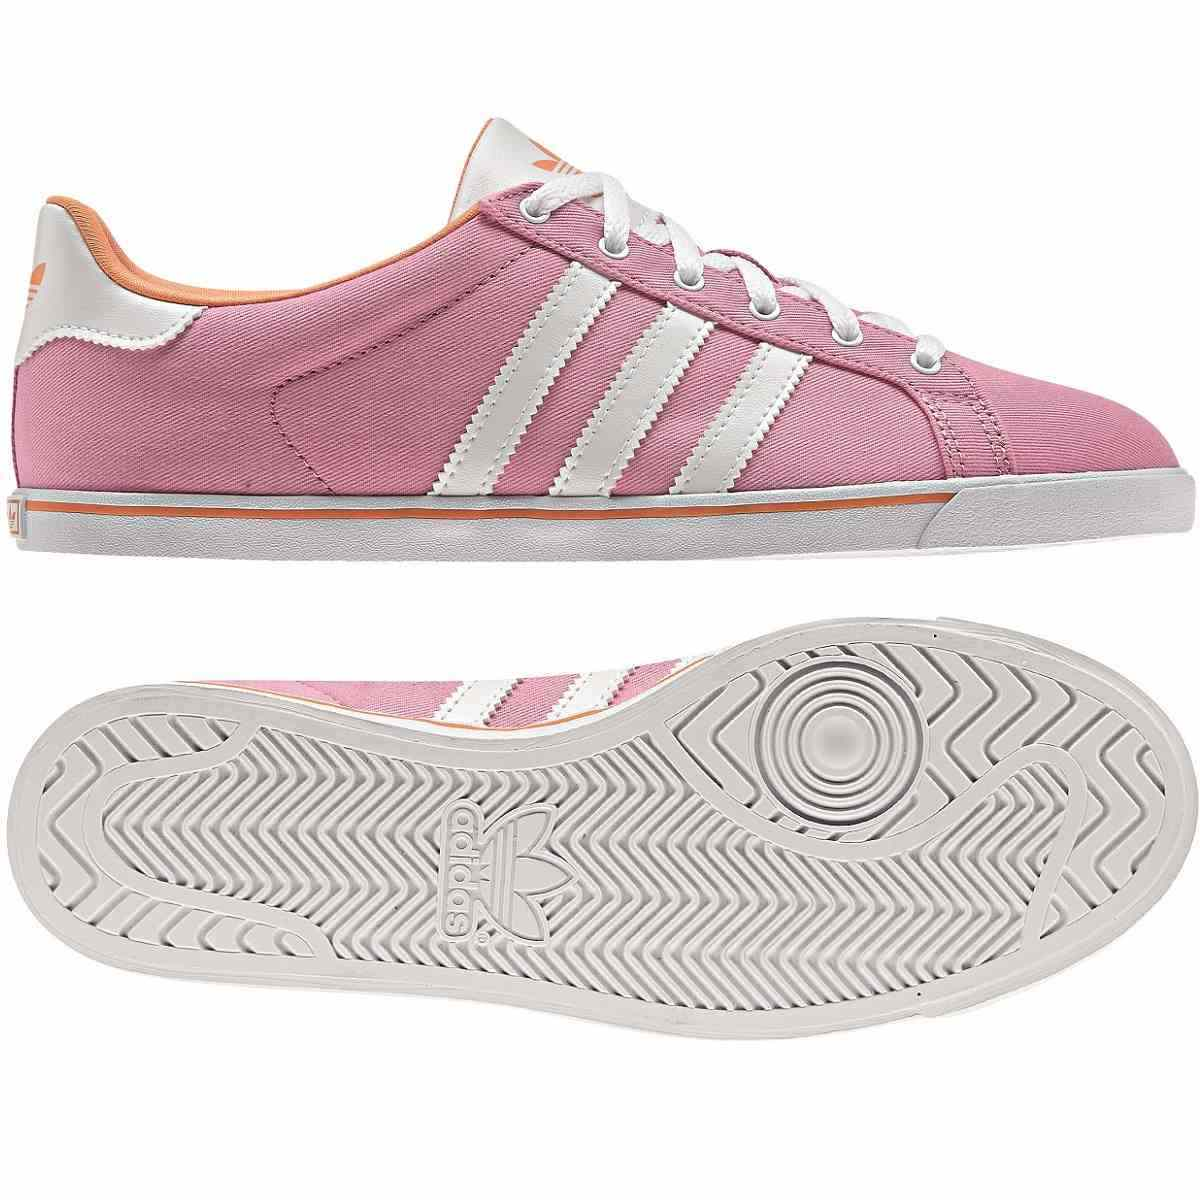 adidas originals court star slim damen schuhe turnschuhe sneaker wei rosa ebay. Black Bedroom Furniture Sets. Home Design Ideas